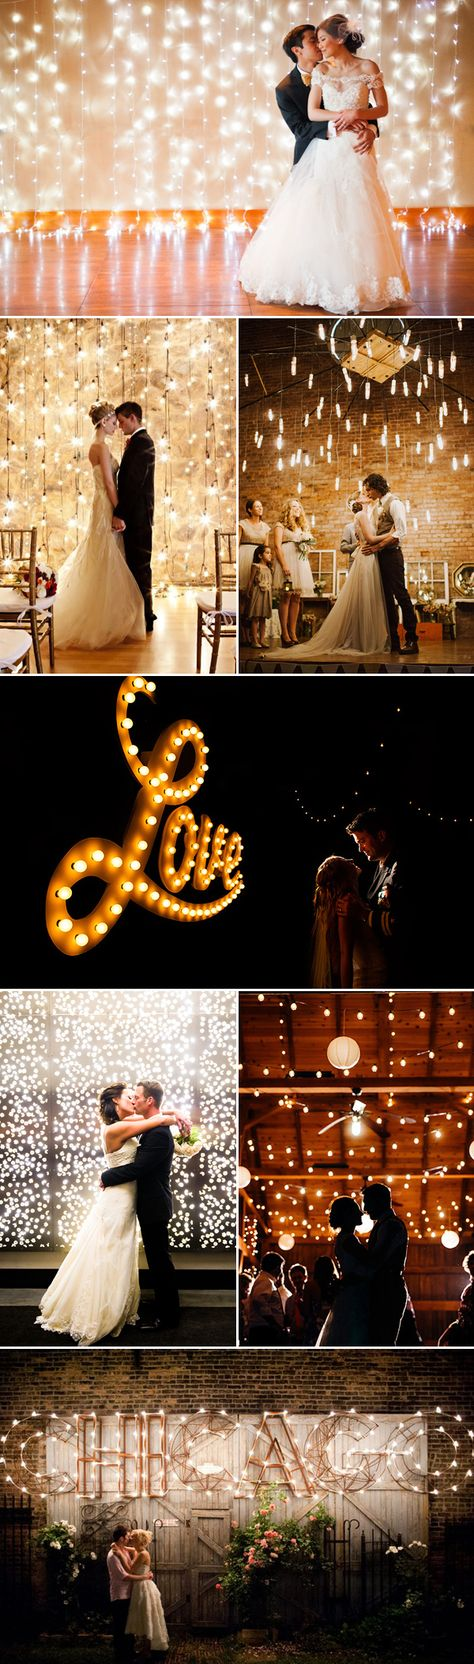 16 Magical Lighted Wedding Backdrop - Indoors